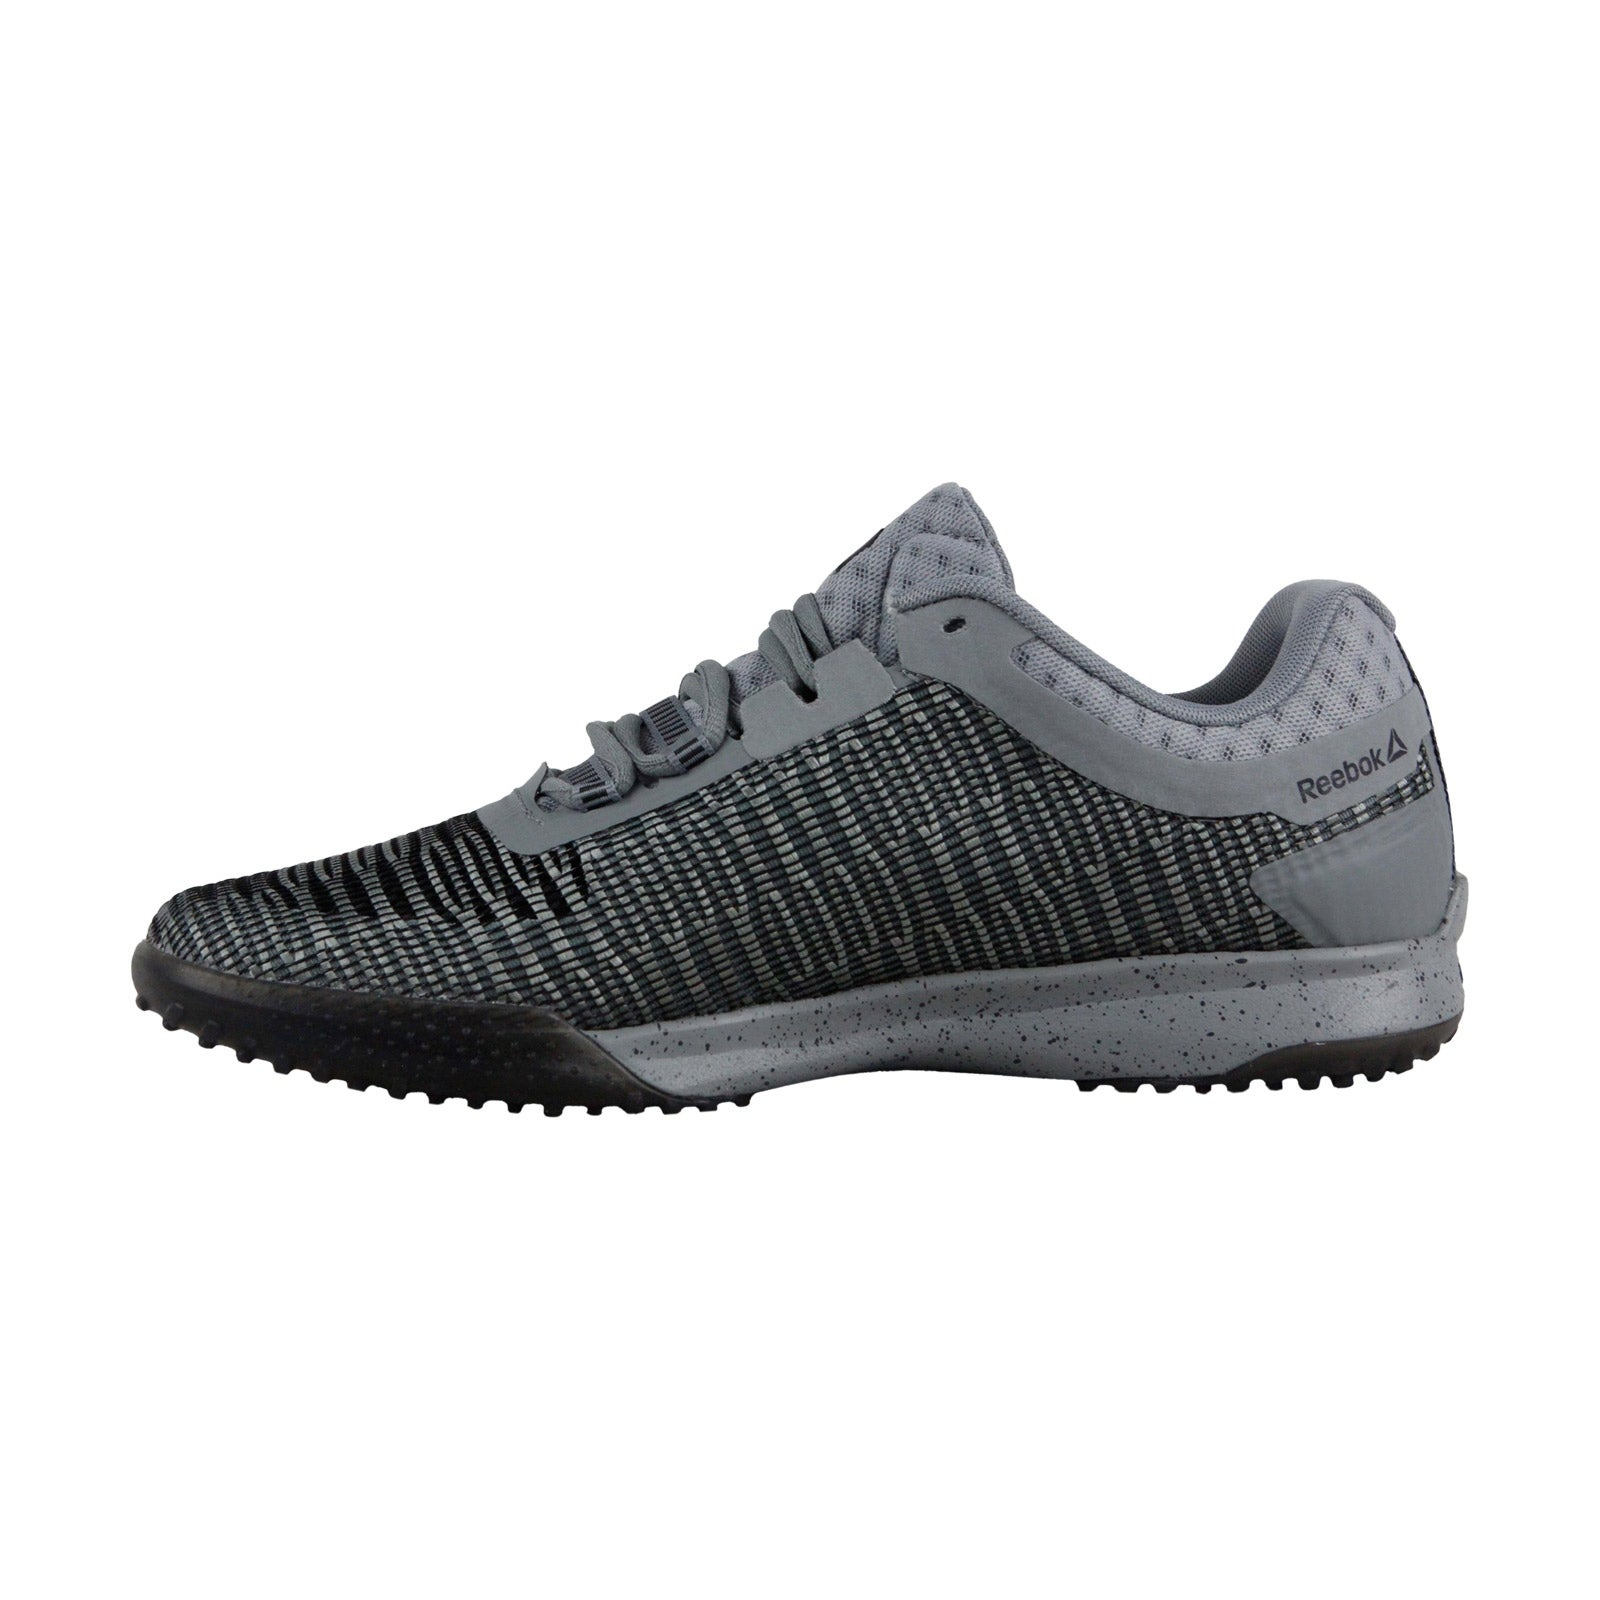 9066df4f81c8 Shop Reebok Jj Ii Low Mens Gray Textile Athletic Lace Up Training Shoes -  Free Shipping Today - Overstock.com - 22340304